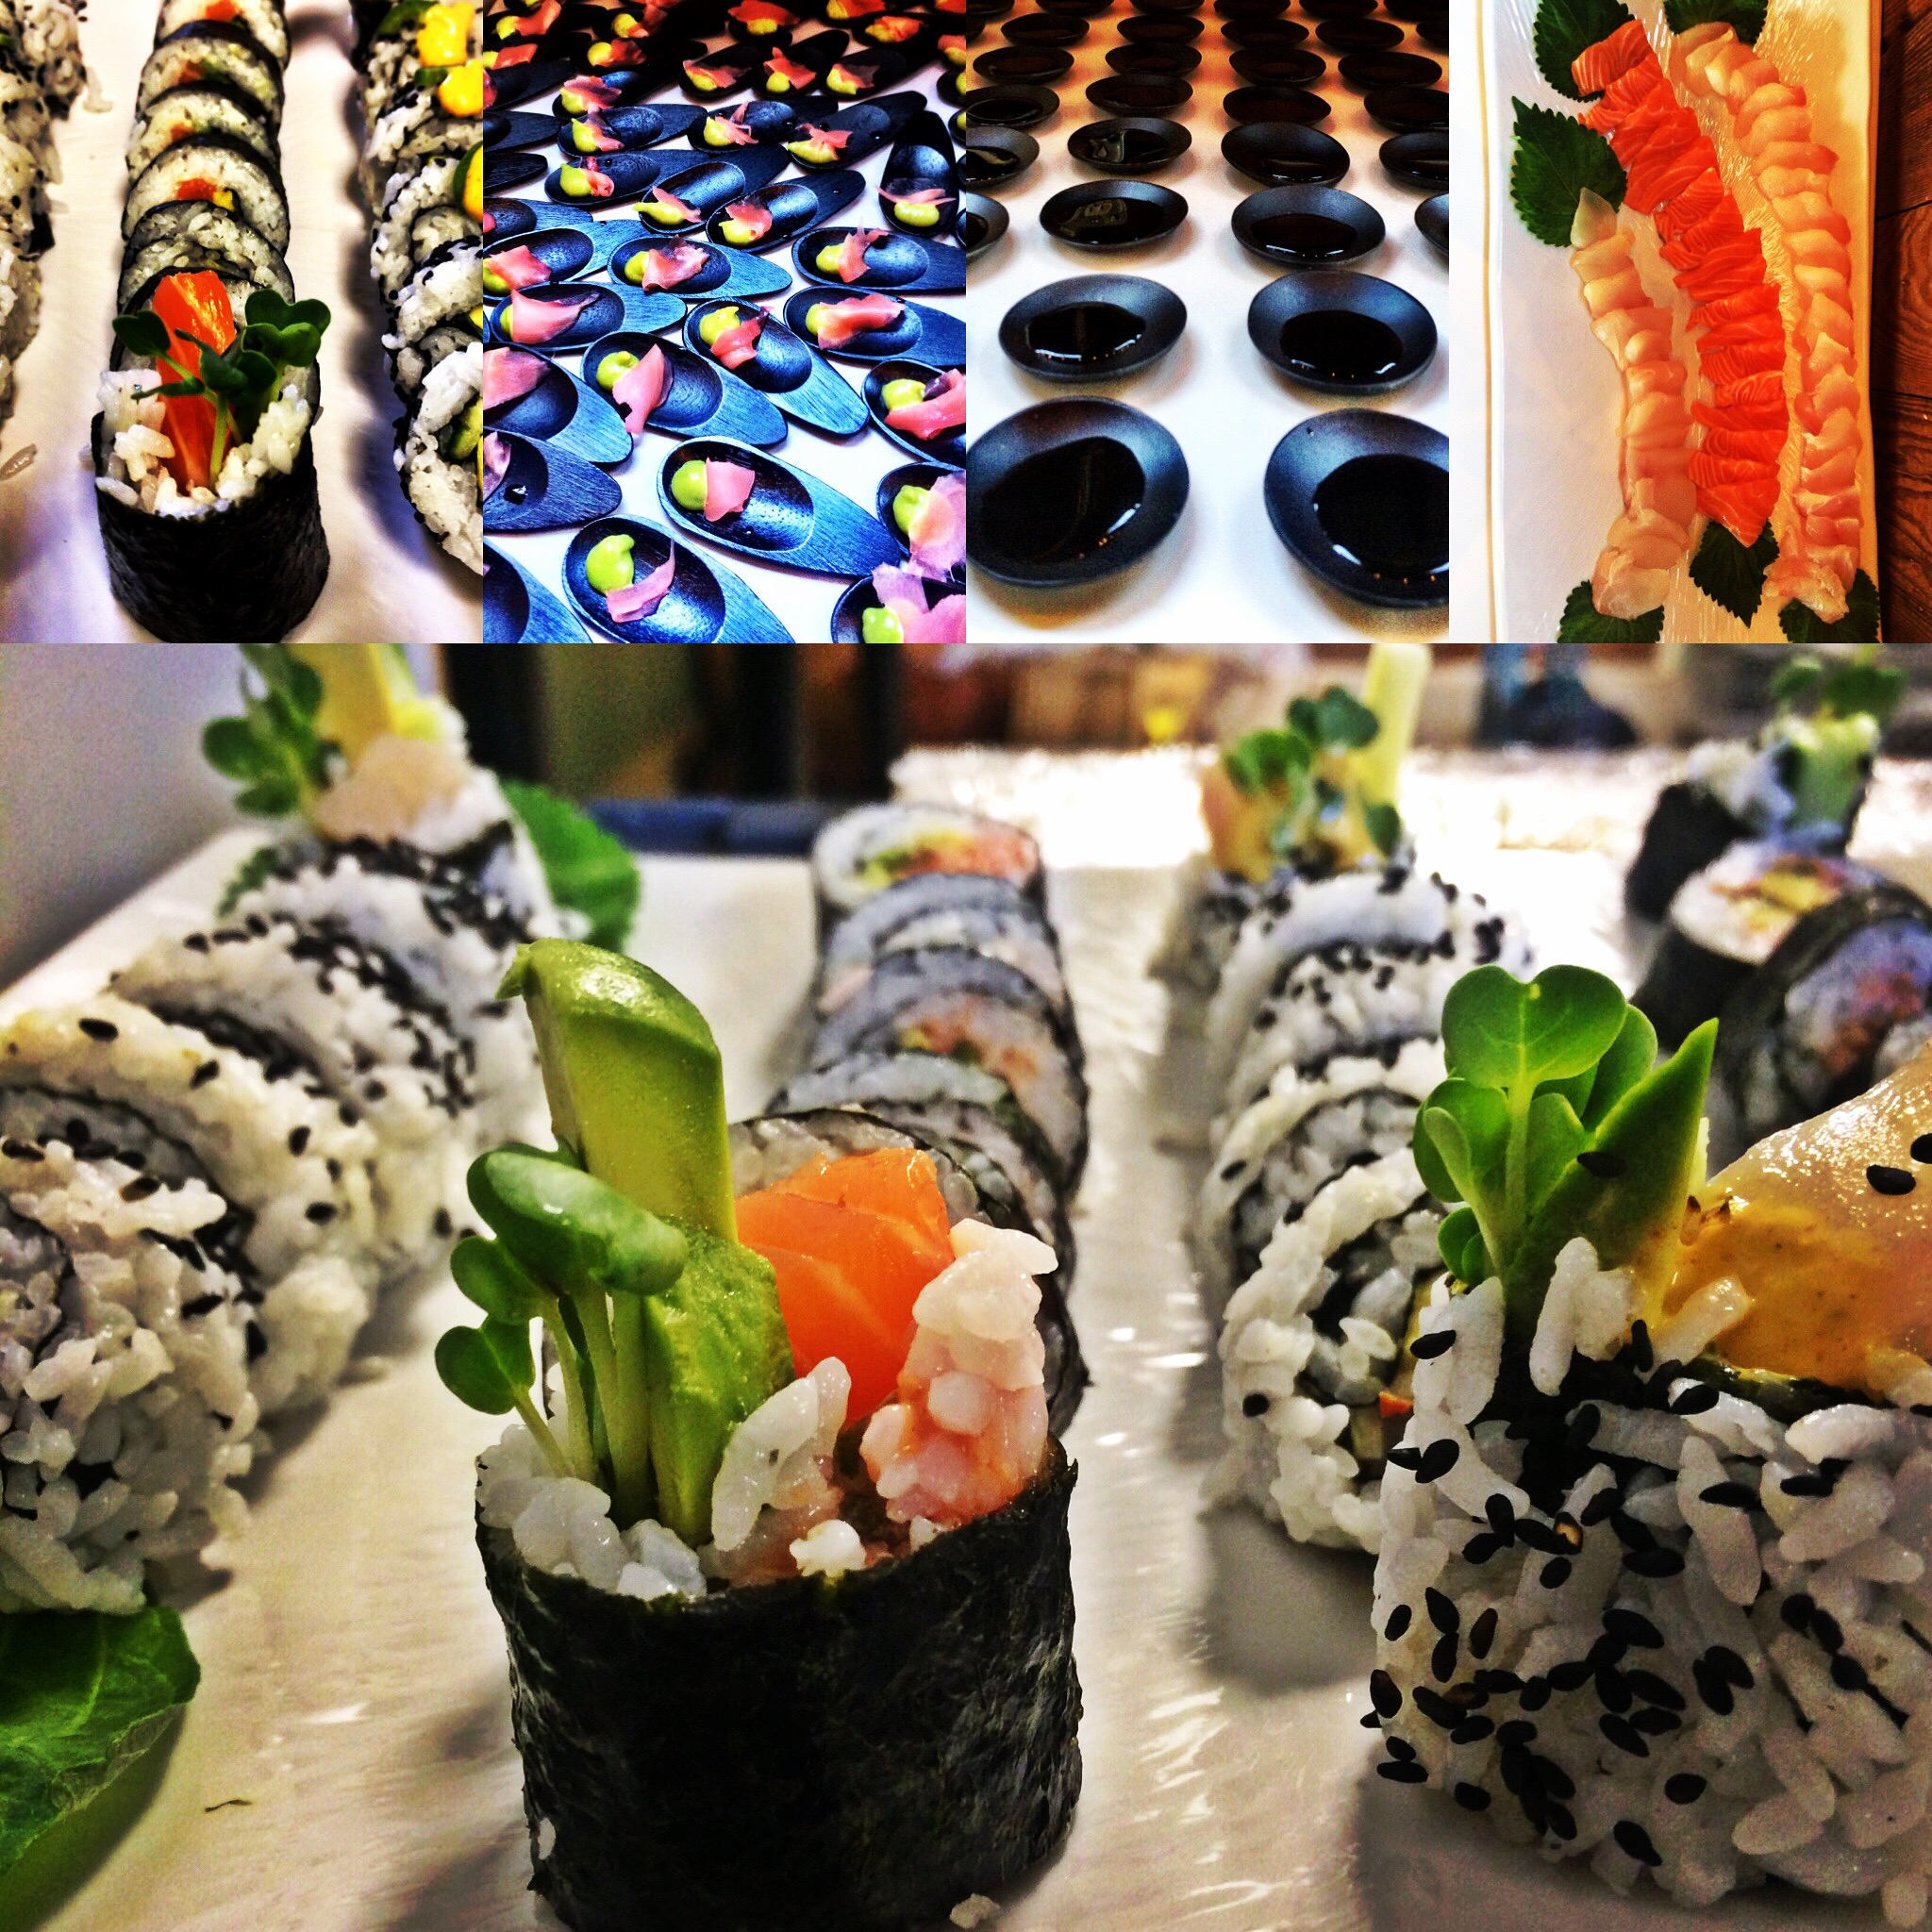 Delectable sushi sampler from Dining With Di.